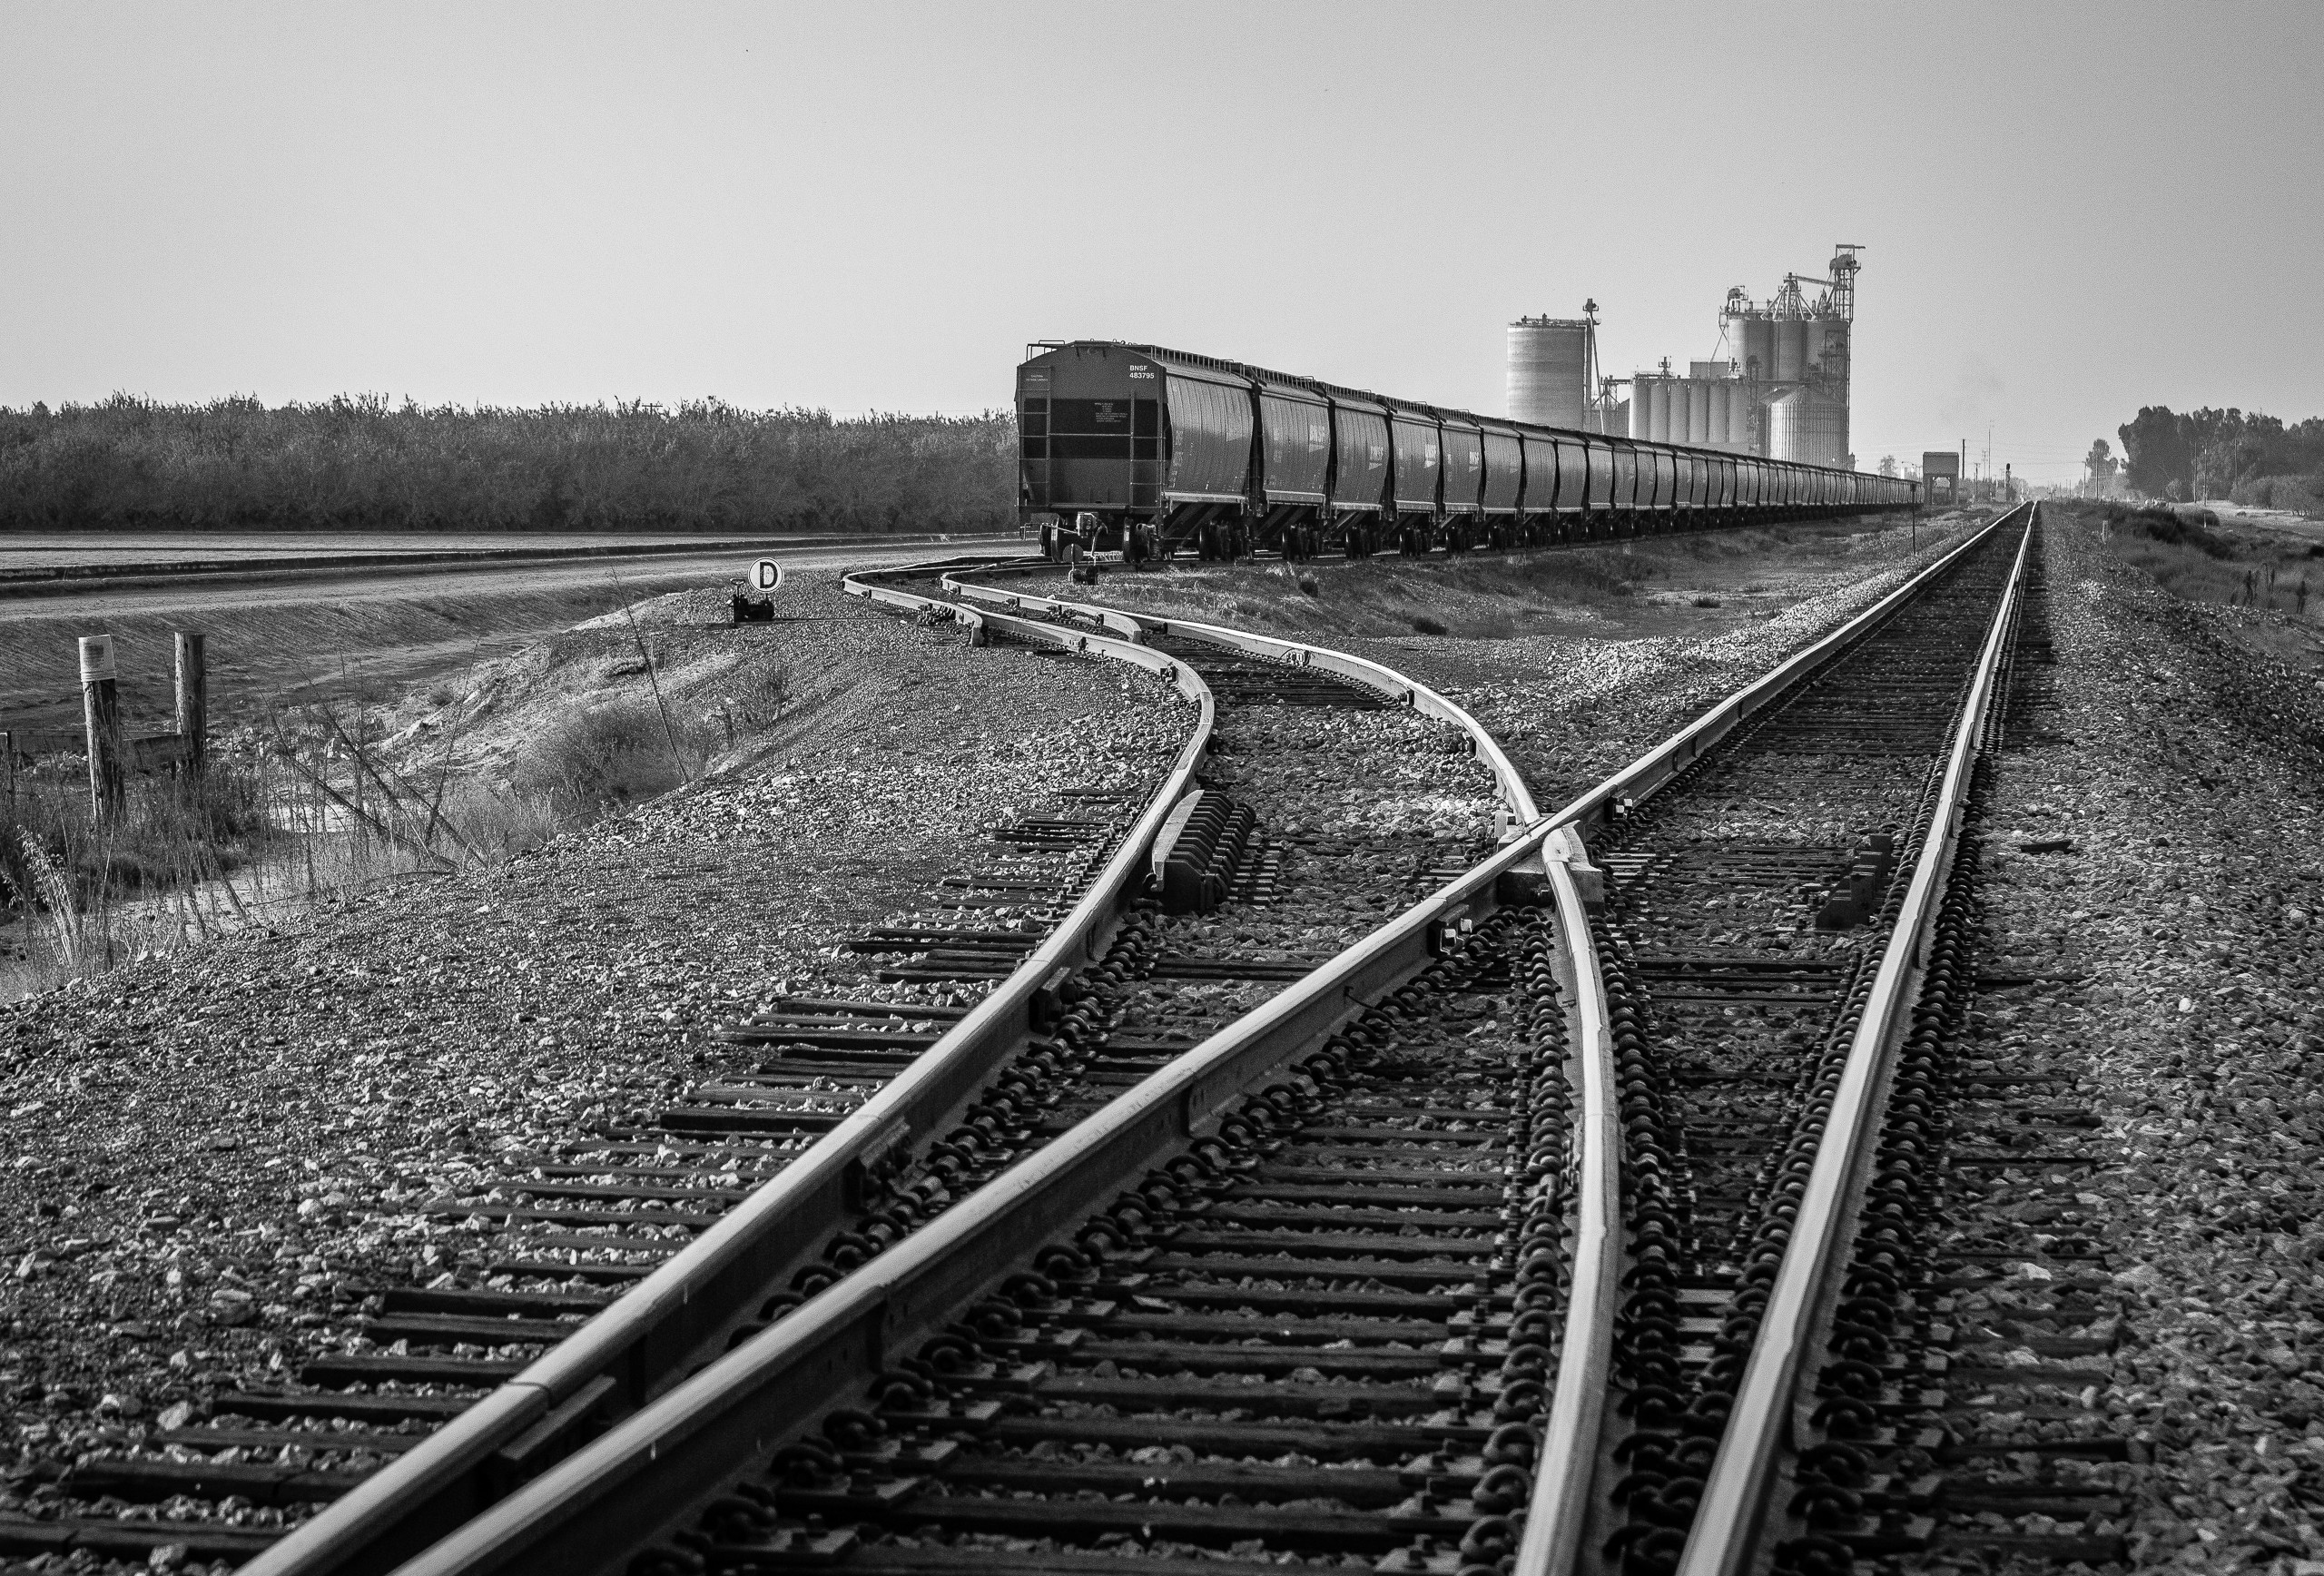 The Grain Train II